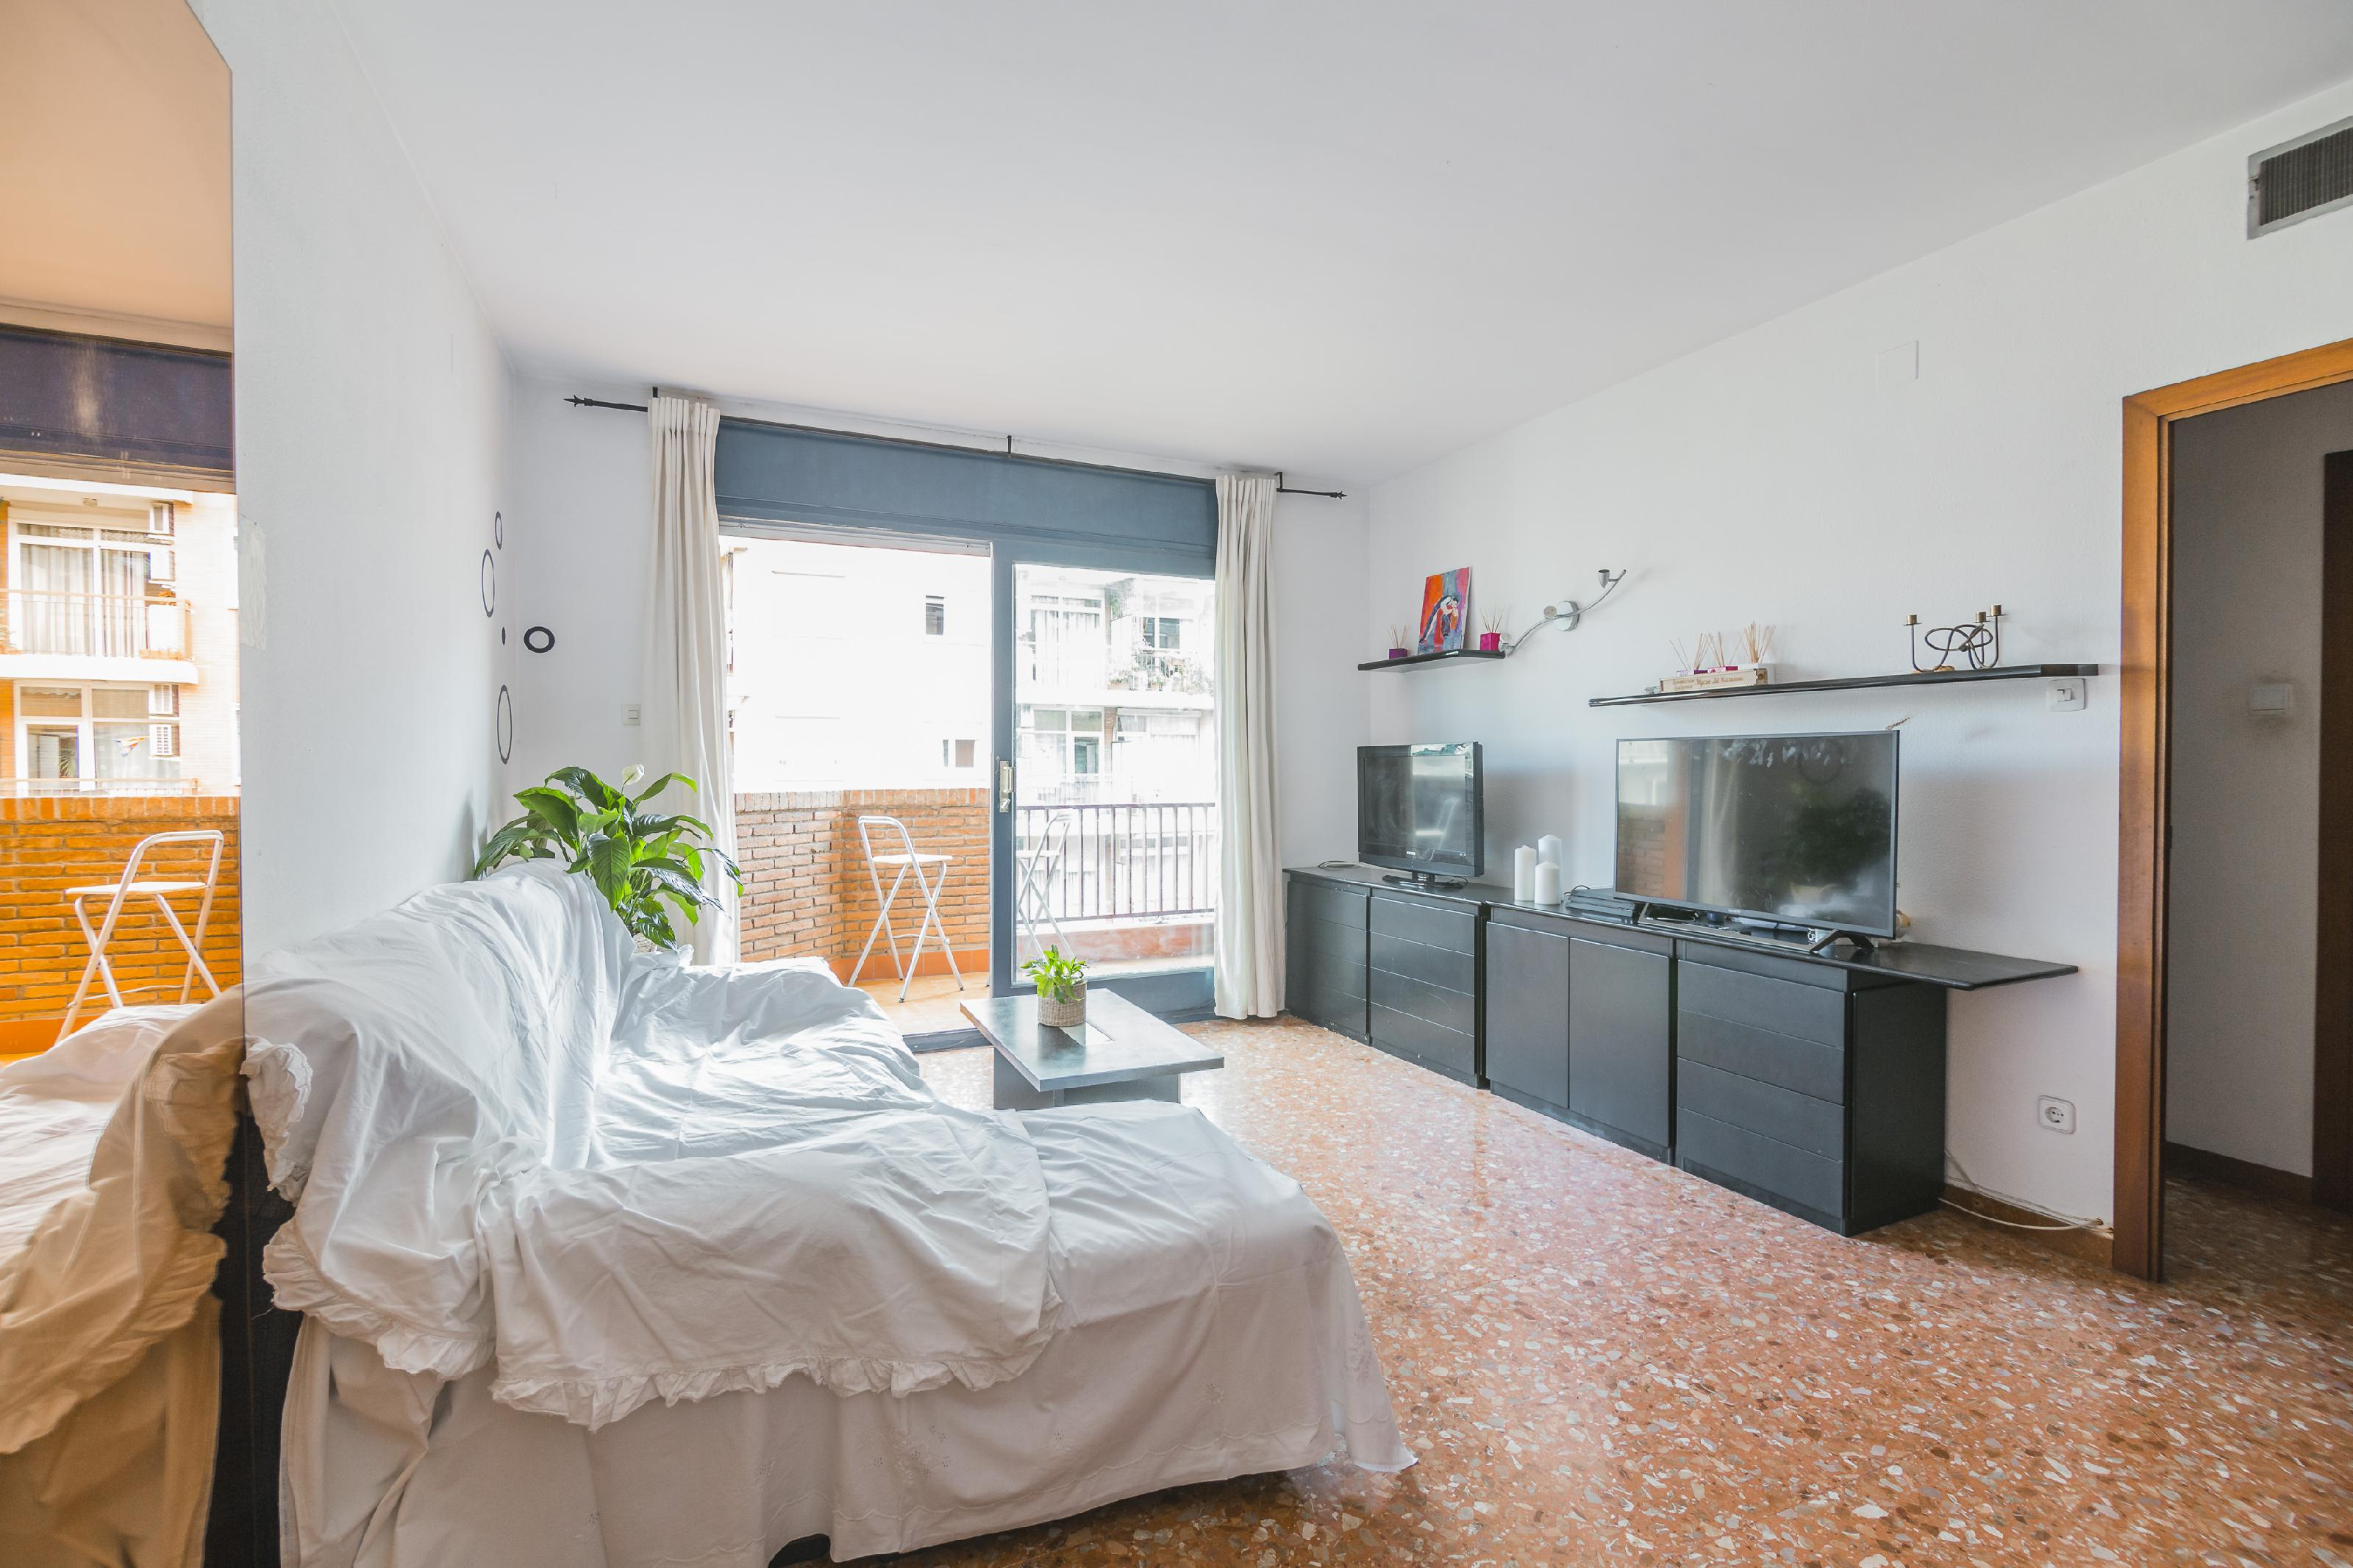 239426 Flat for sale in Les Corts, Les Corts 1